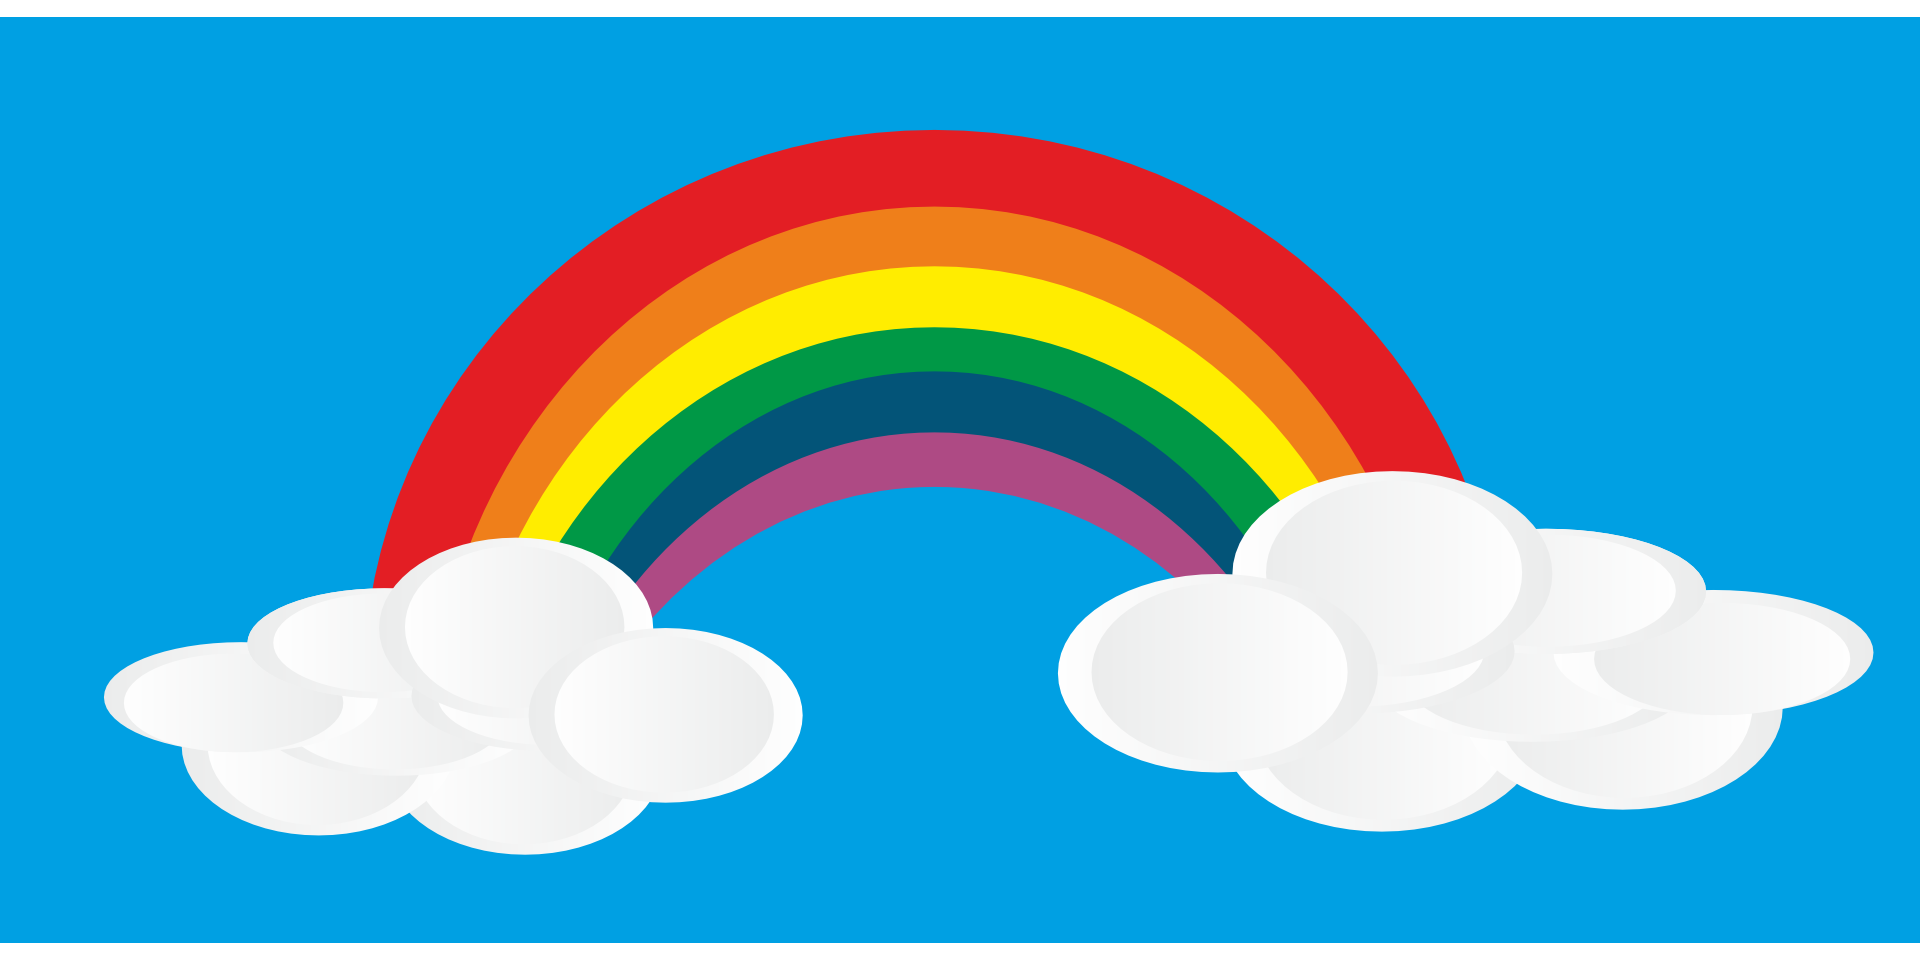 Drawn rainbow cloud png Image white clouds Rainbow white